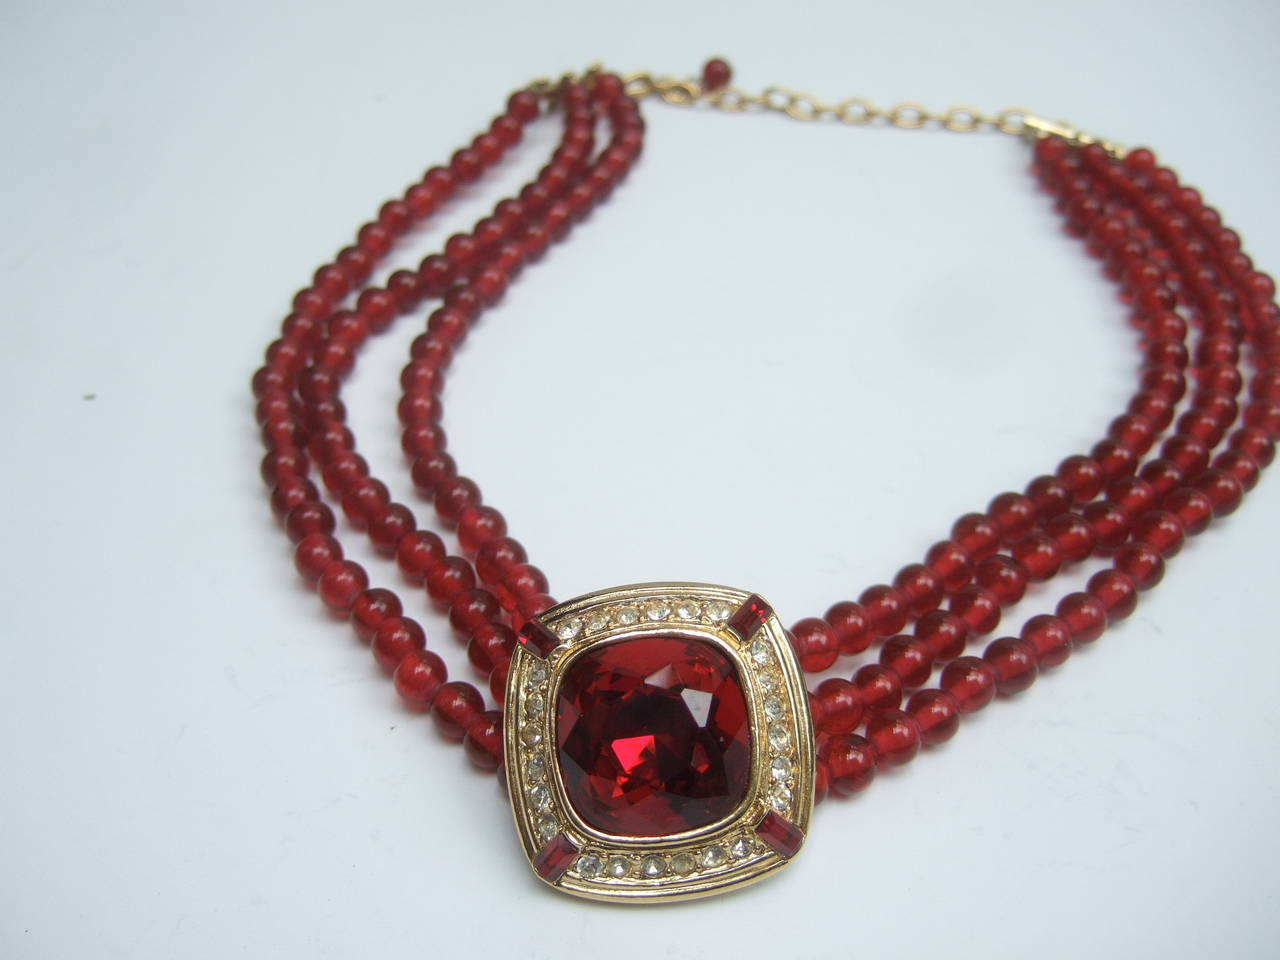 Trifari Elegant Ruby Glass Beaded Choker Necklace c 1980 For Sale 1